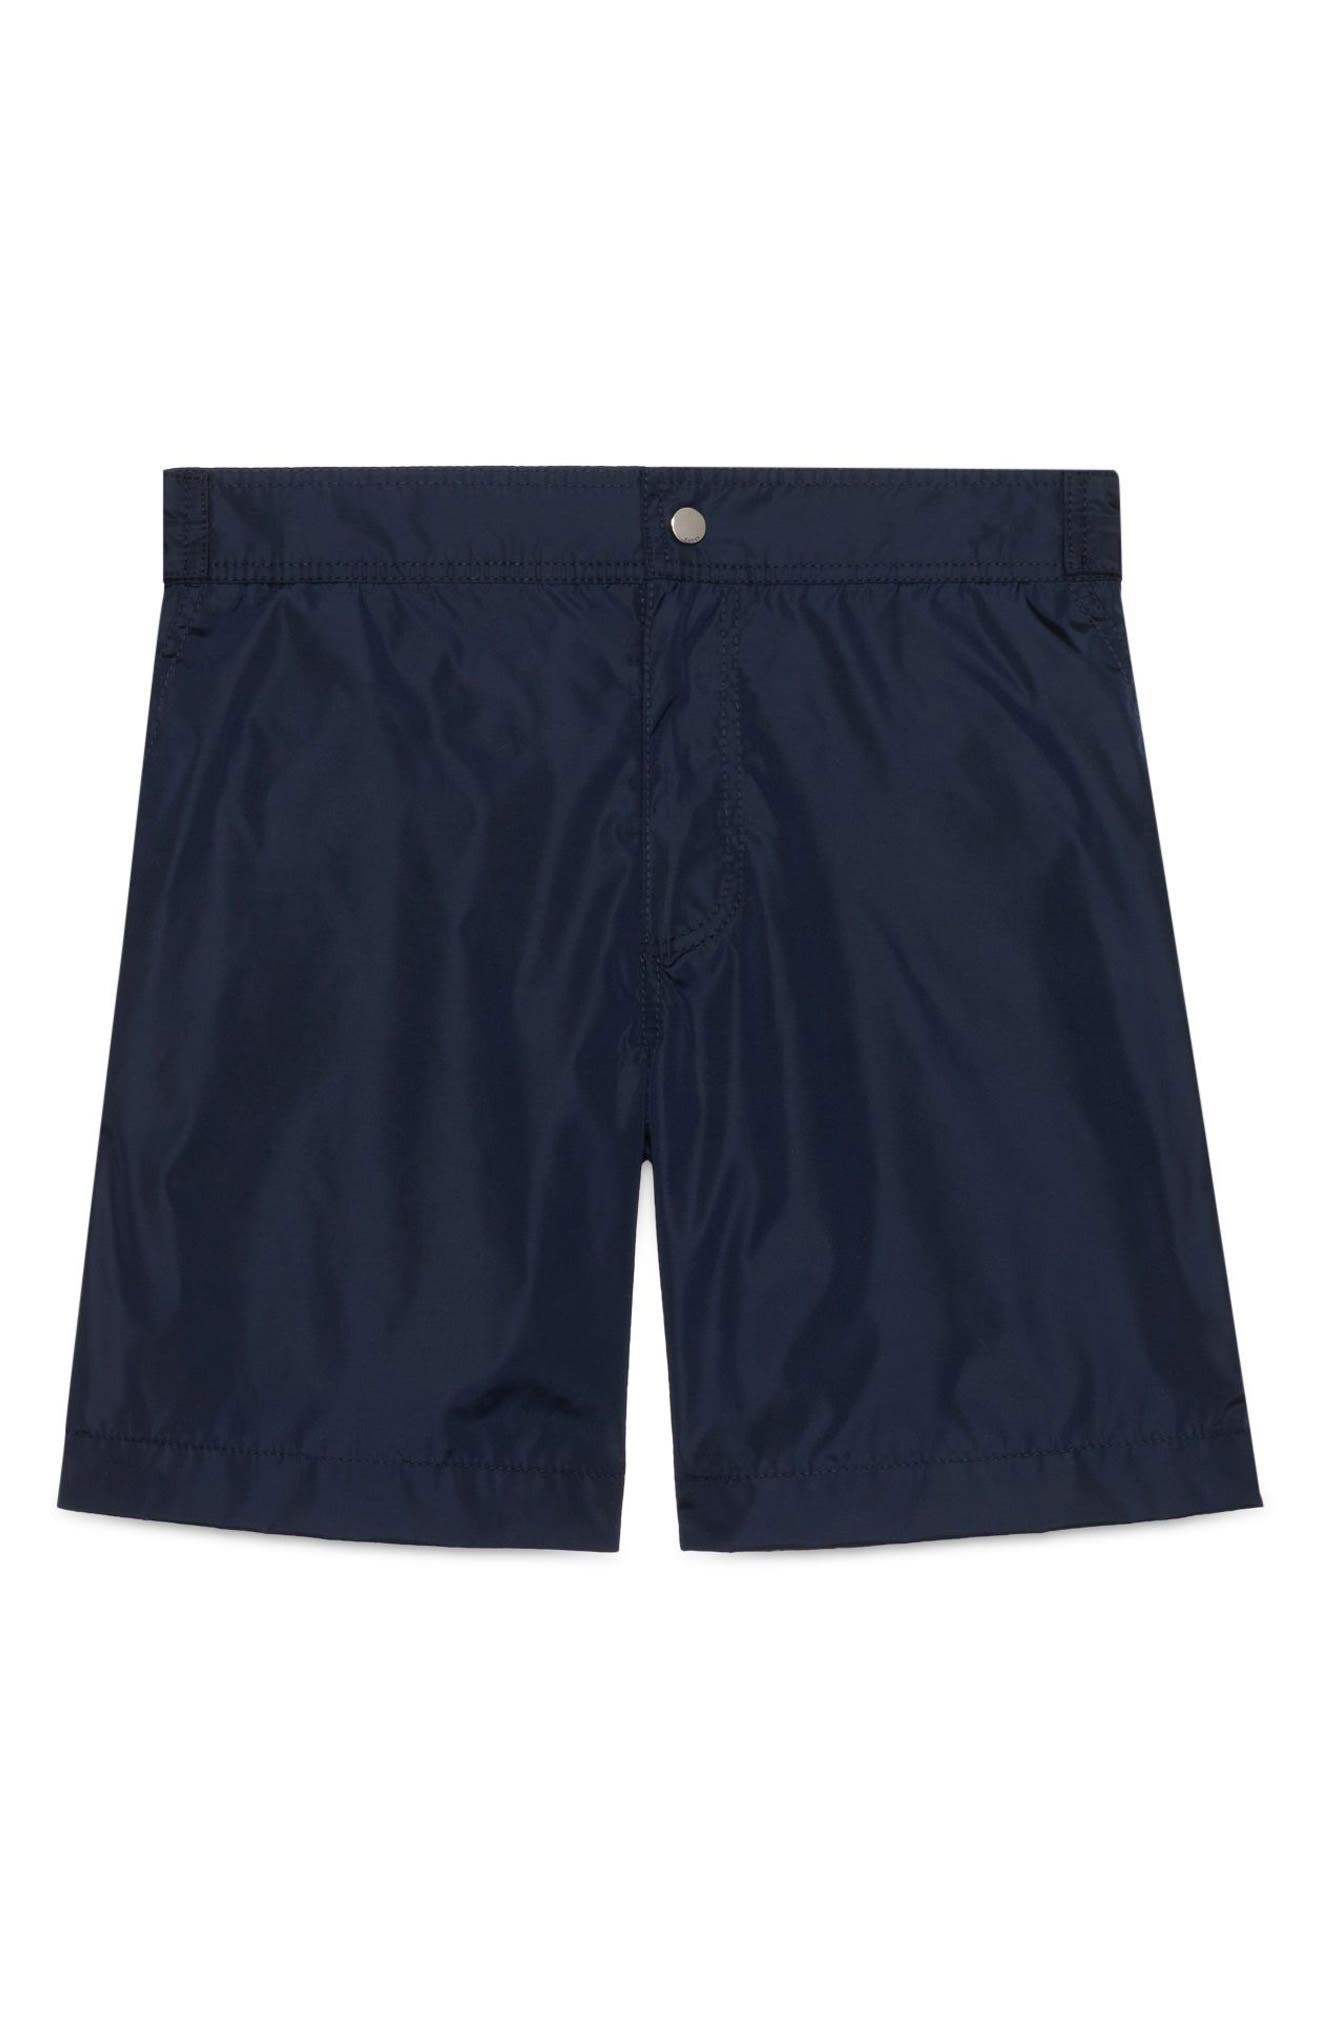 Gucci Swim Trunks (Little Boys & Big Boys)